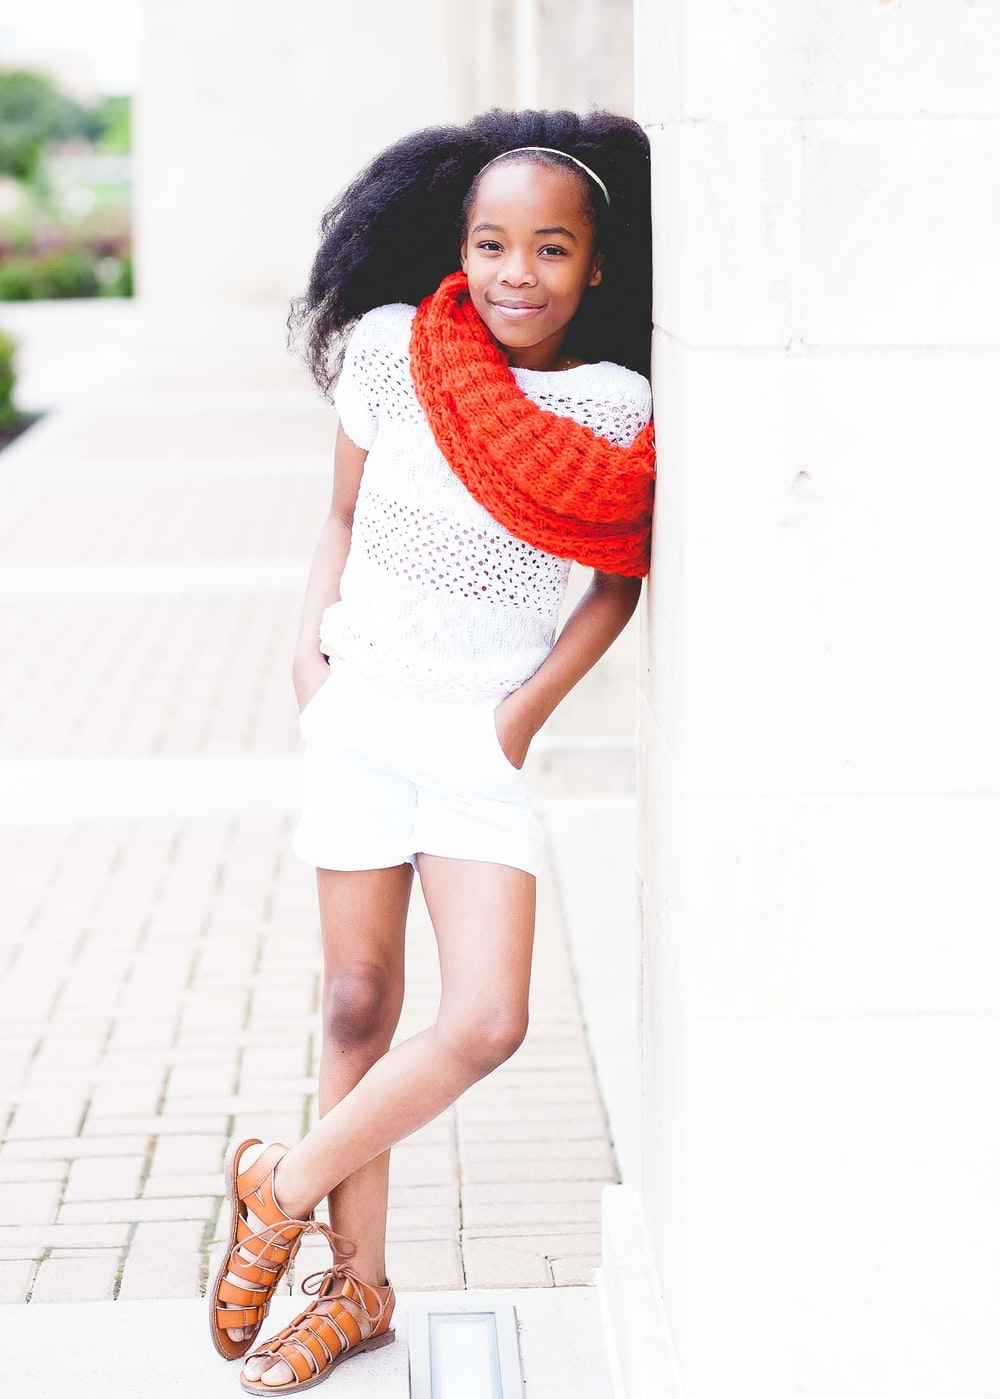 smiling girl in white shirt and shorts wearing red scarf during daytime